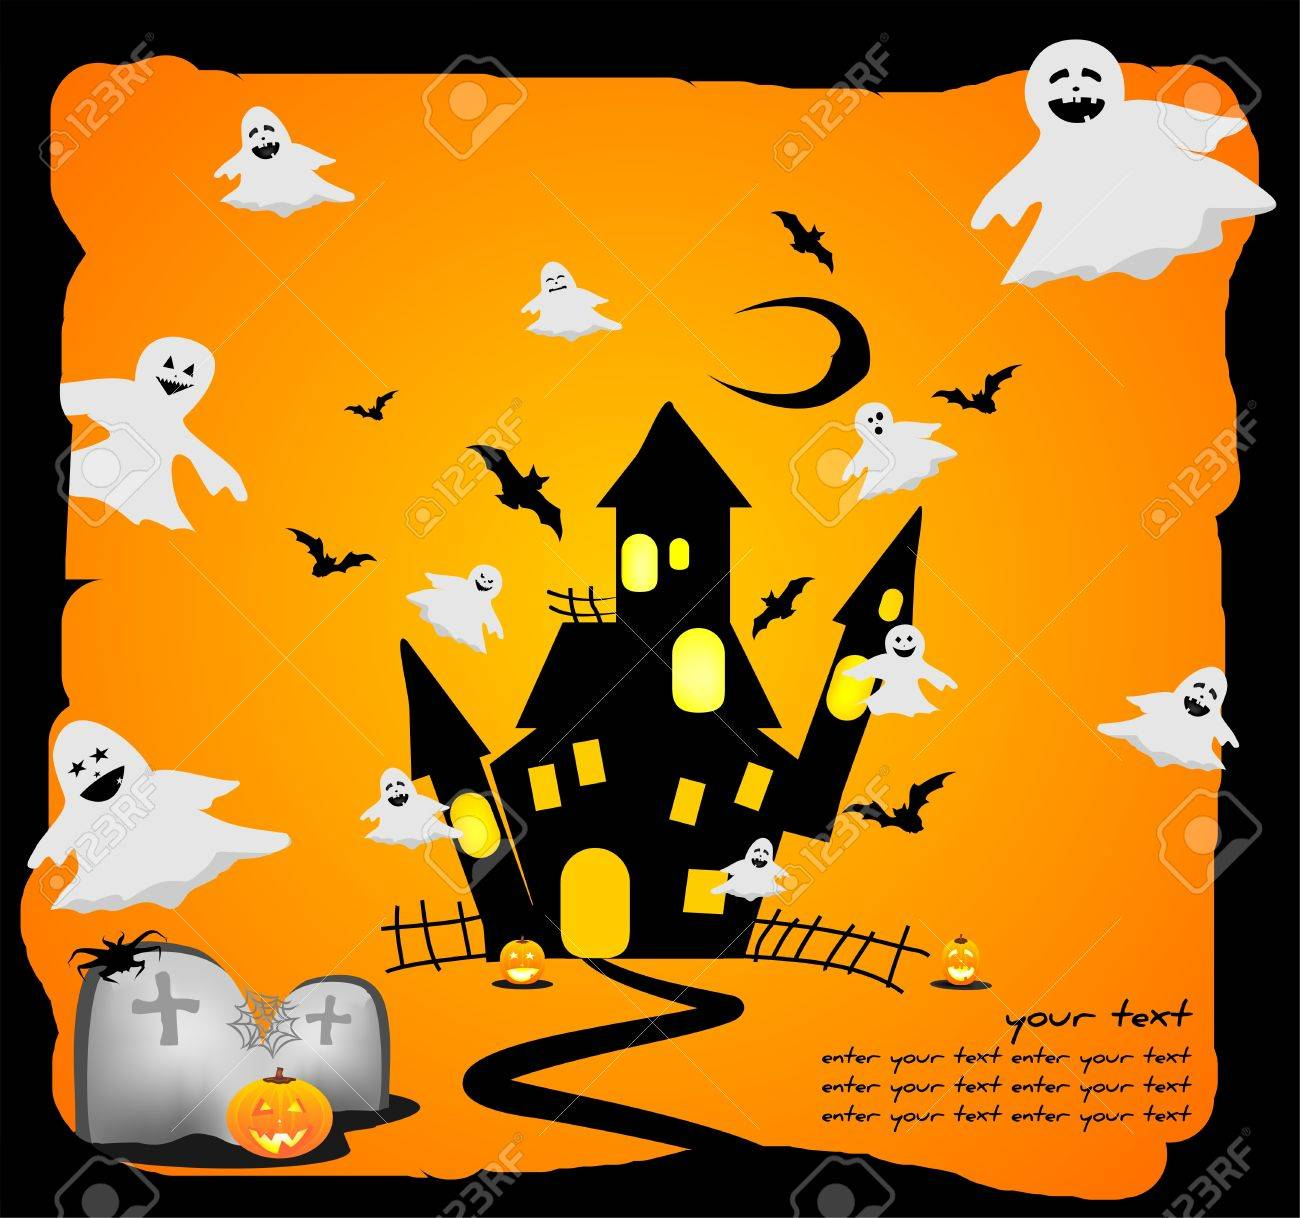 funny halloween background with ghosts royalty free cliparts